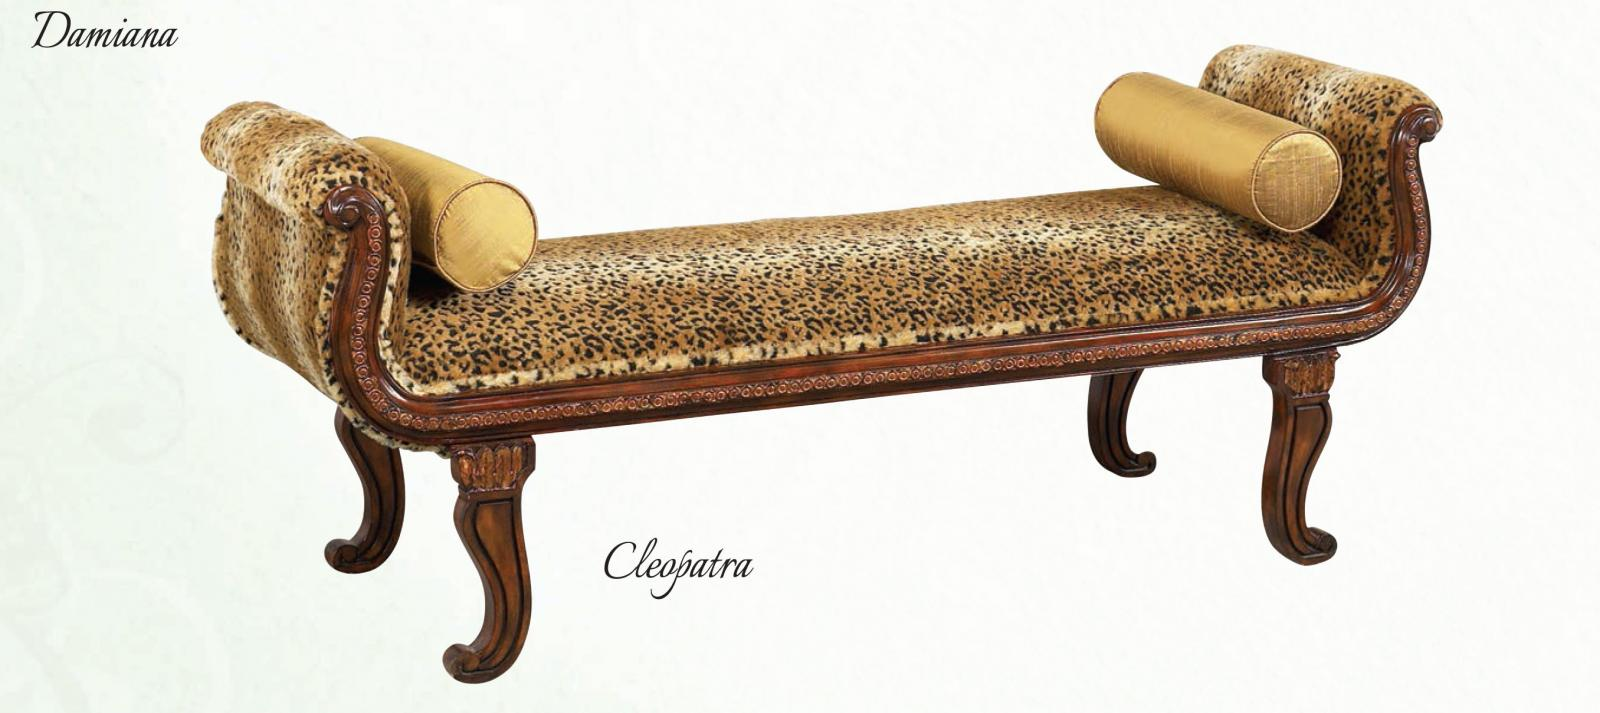 Classic, Traditional Walnut, Light Brown, Golden Beige Chenille and Wood, Solid Hardwood Benches 1 pcs Cleopatra by Benneti